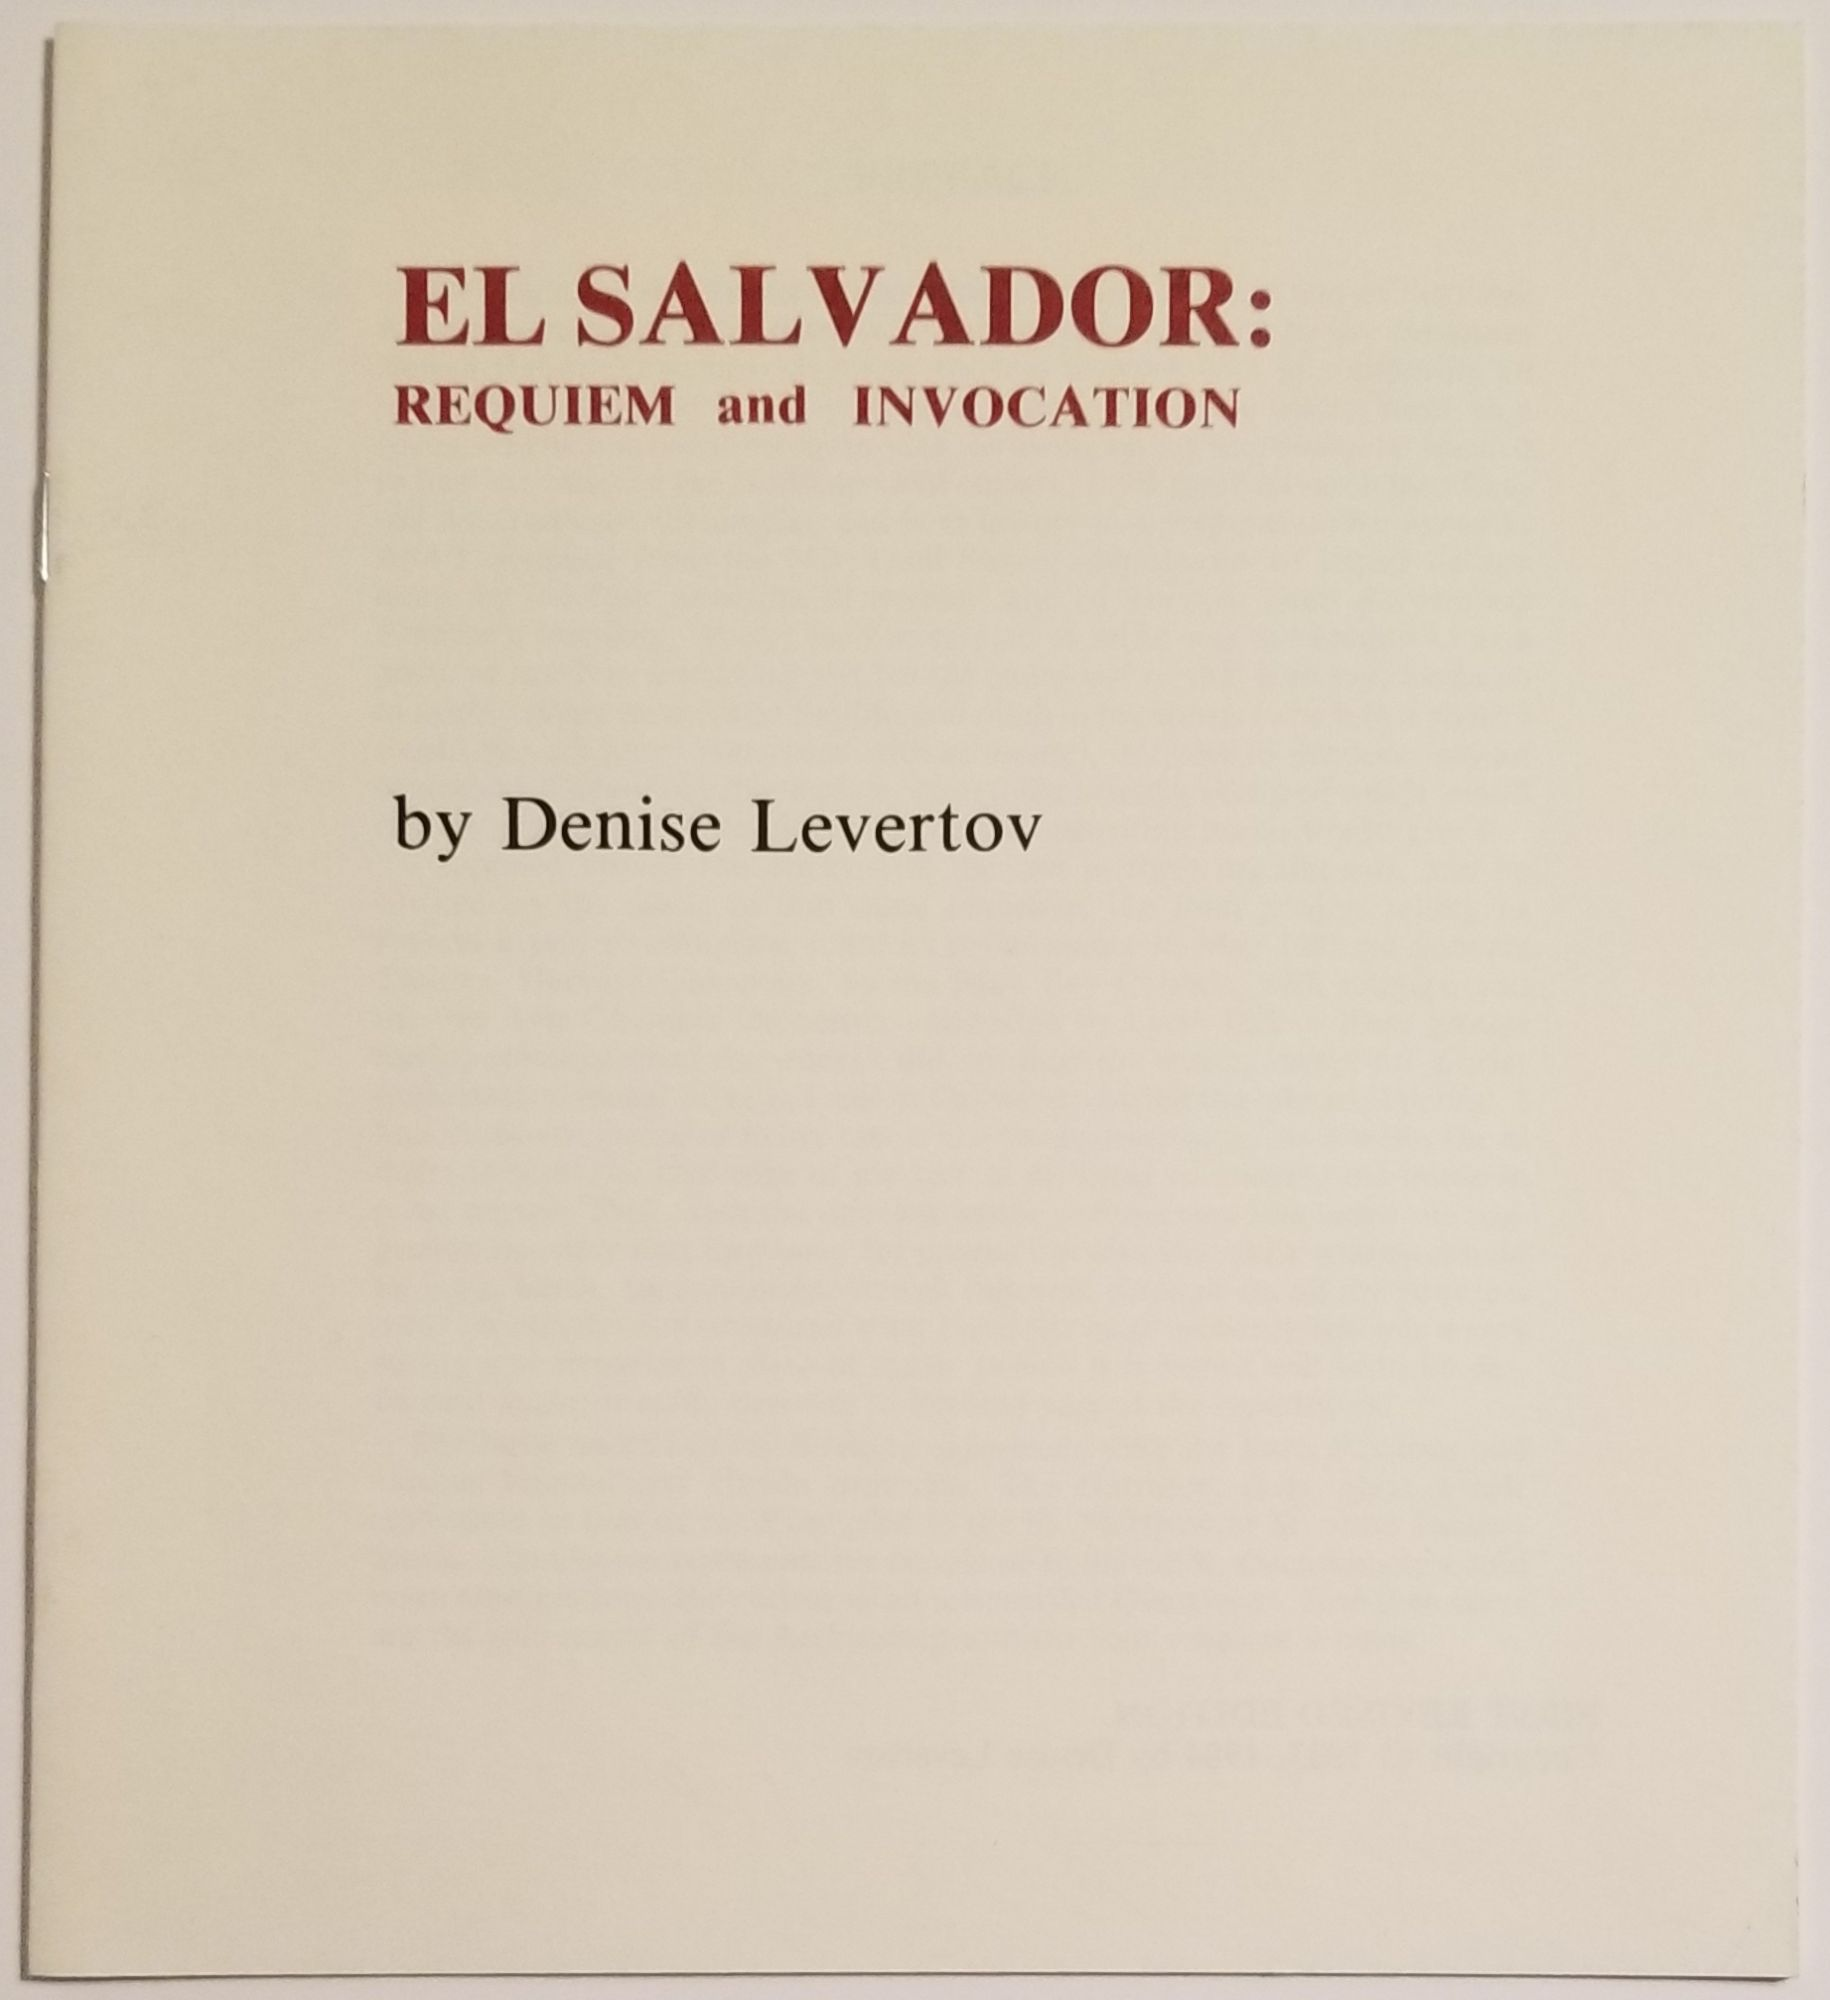 EL SALVADOR: REQUIEM and INVOCATION. Denise Levertov.